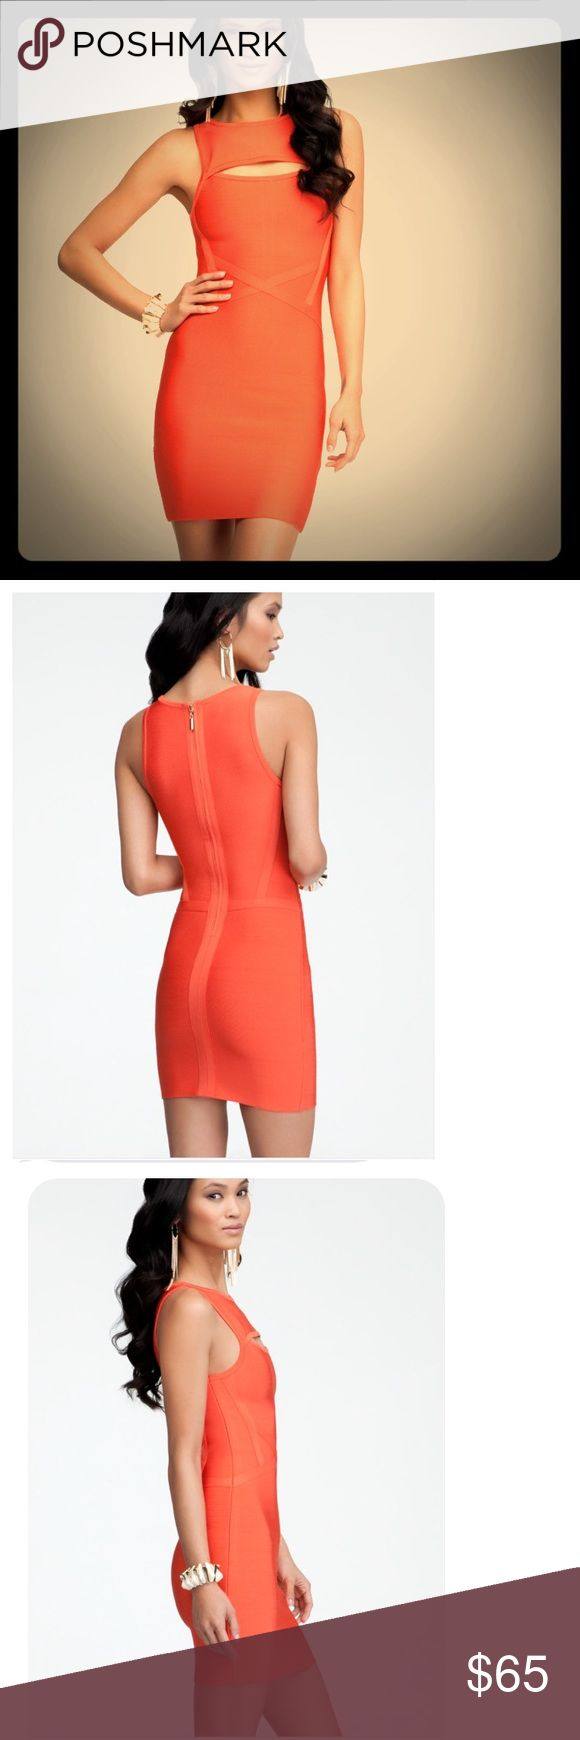 Bebe Bandage Orange Mini Dress Bebe Bandage Orange Mini Dress. Brand new. bebe Dresses Mini